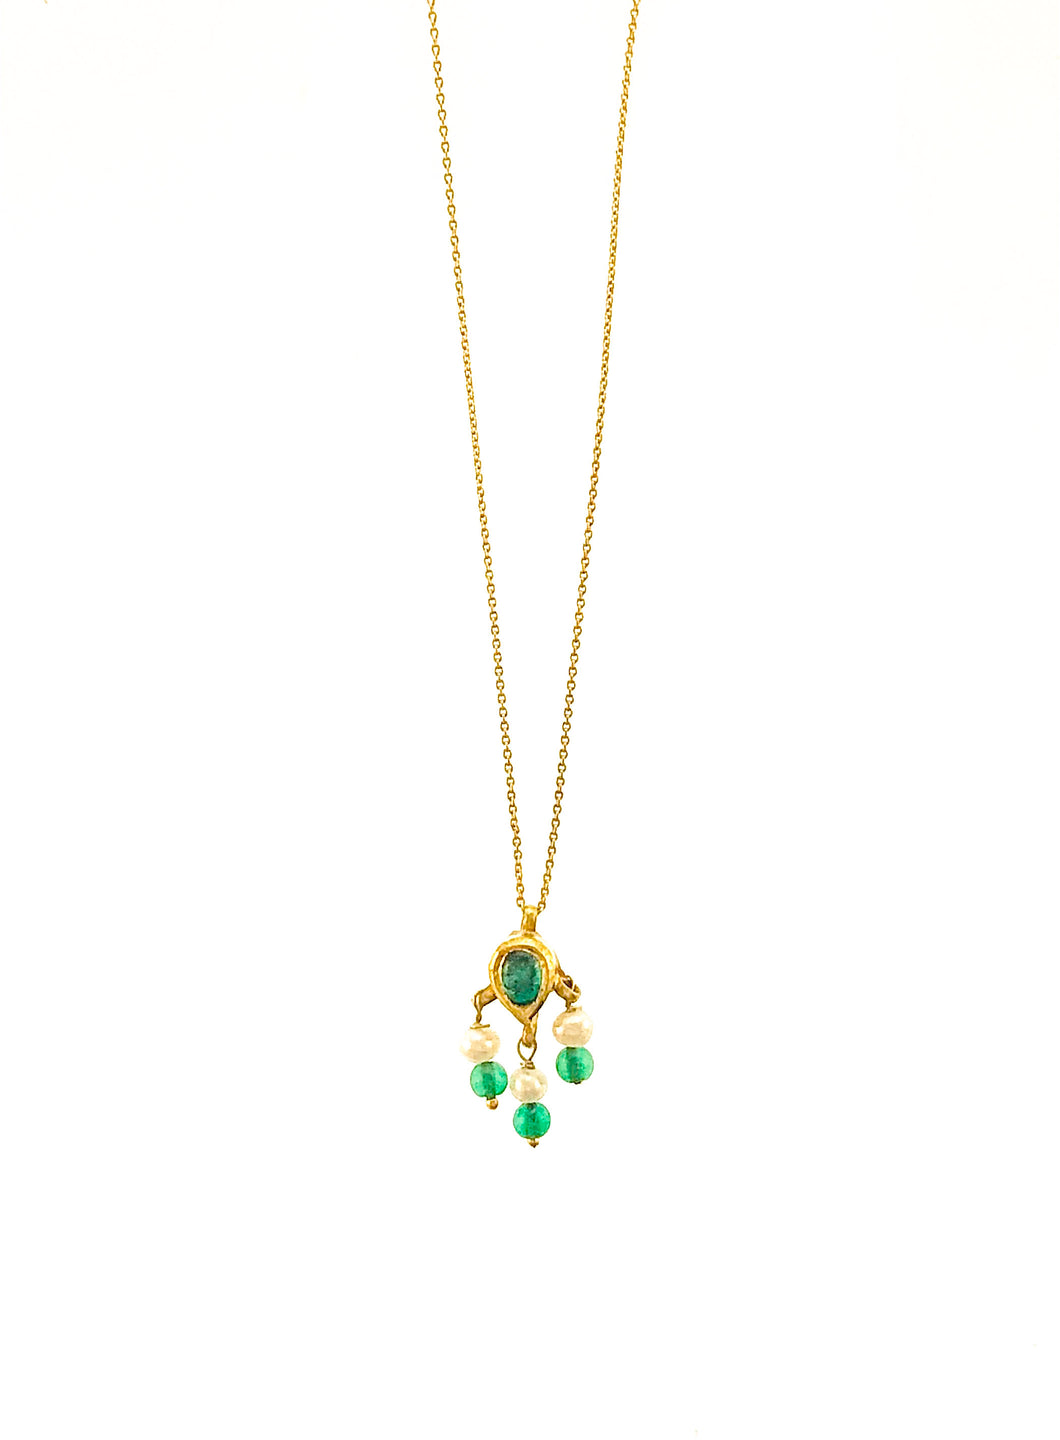 Antique 18K Emerald and Pearl Drop on 18K Chain